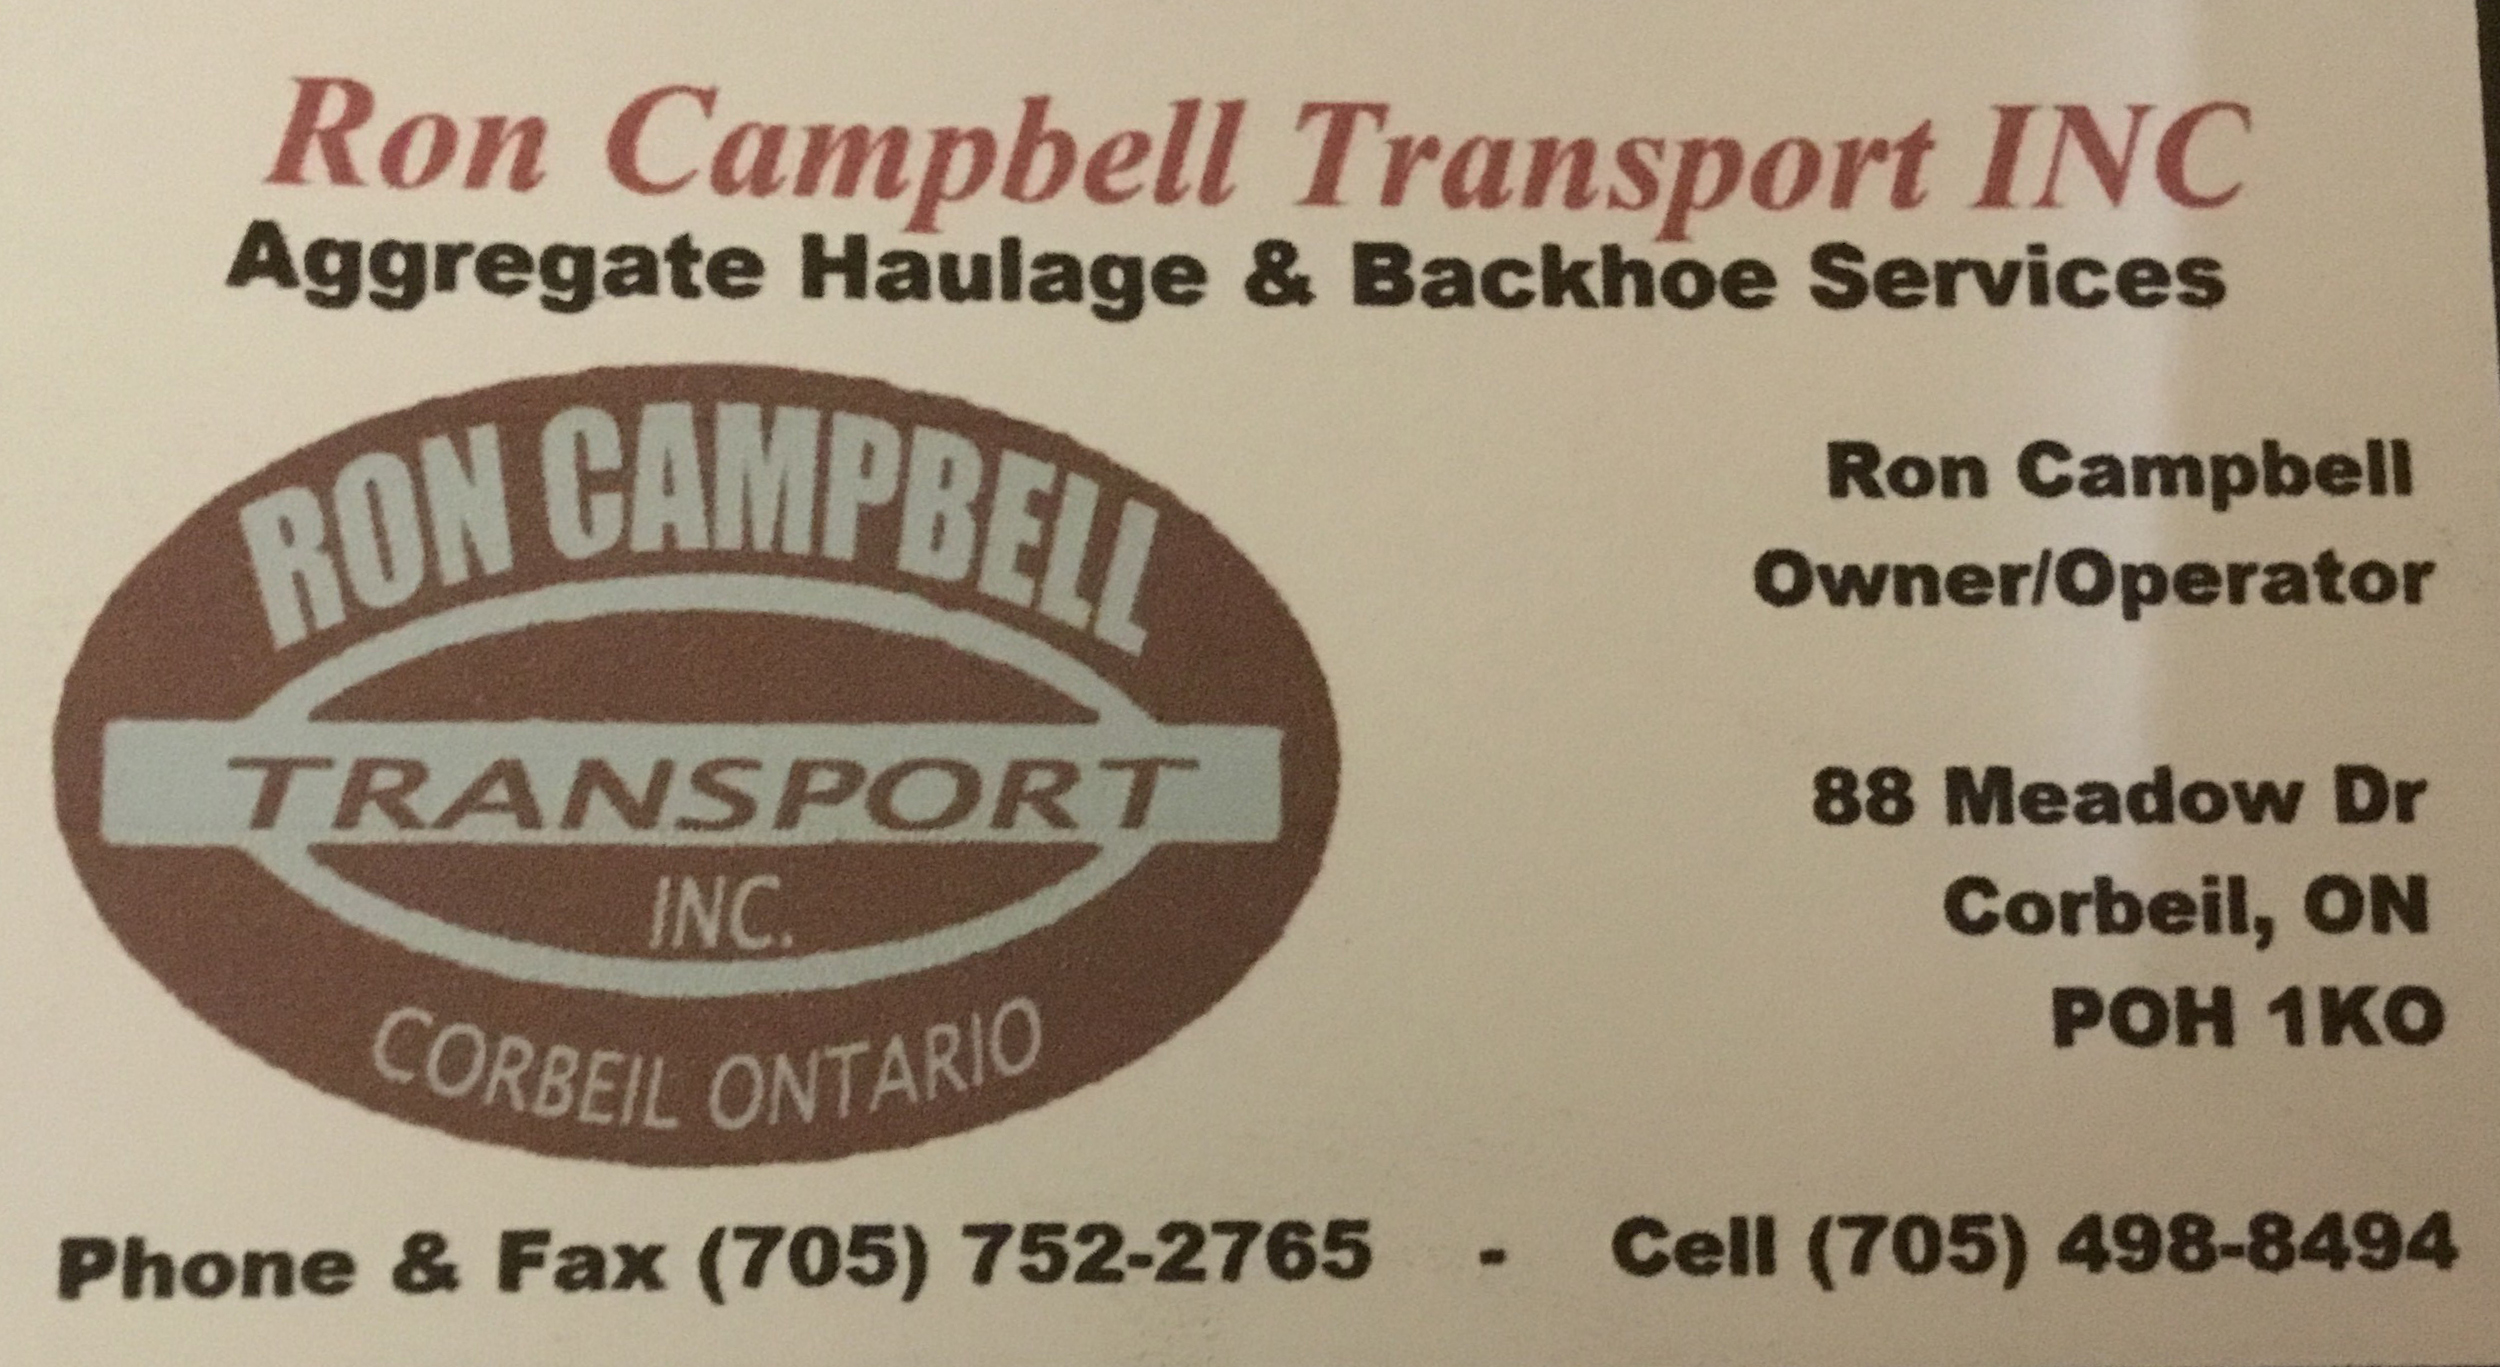 Ron Campbell Transport Inc.